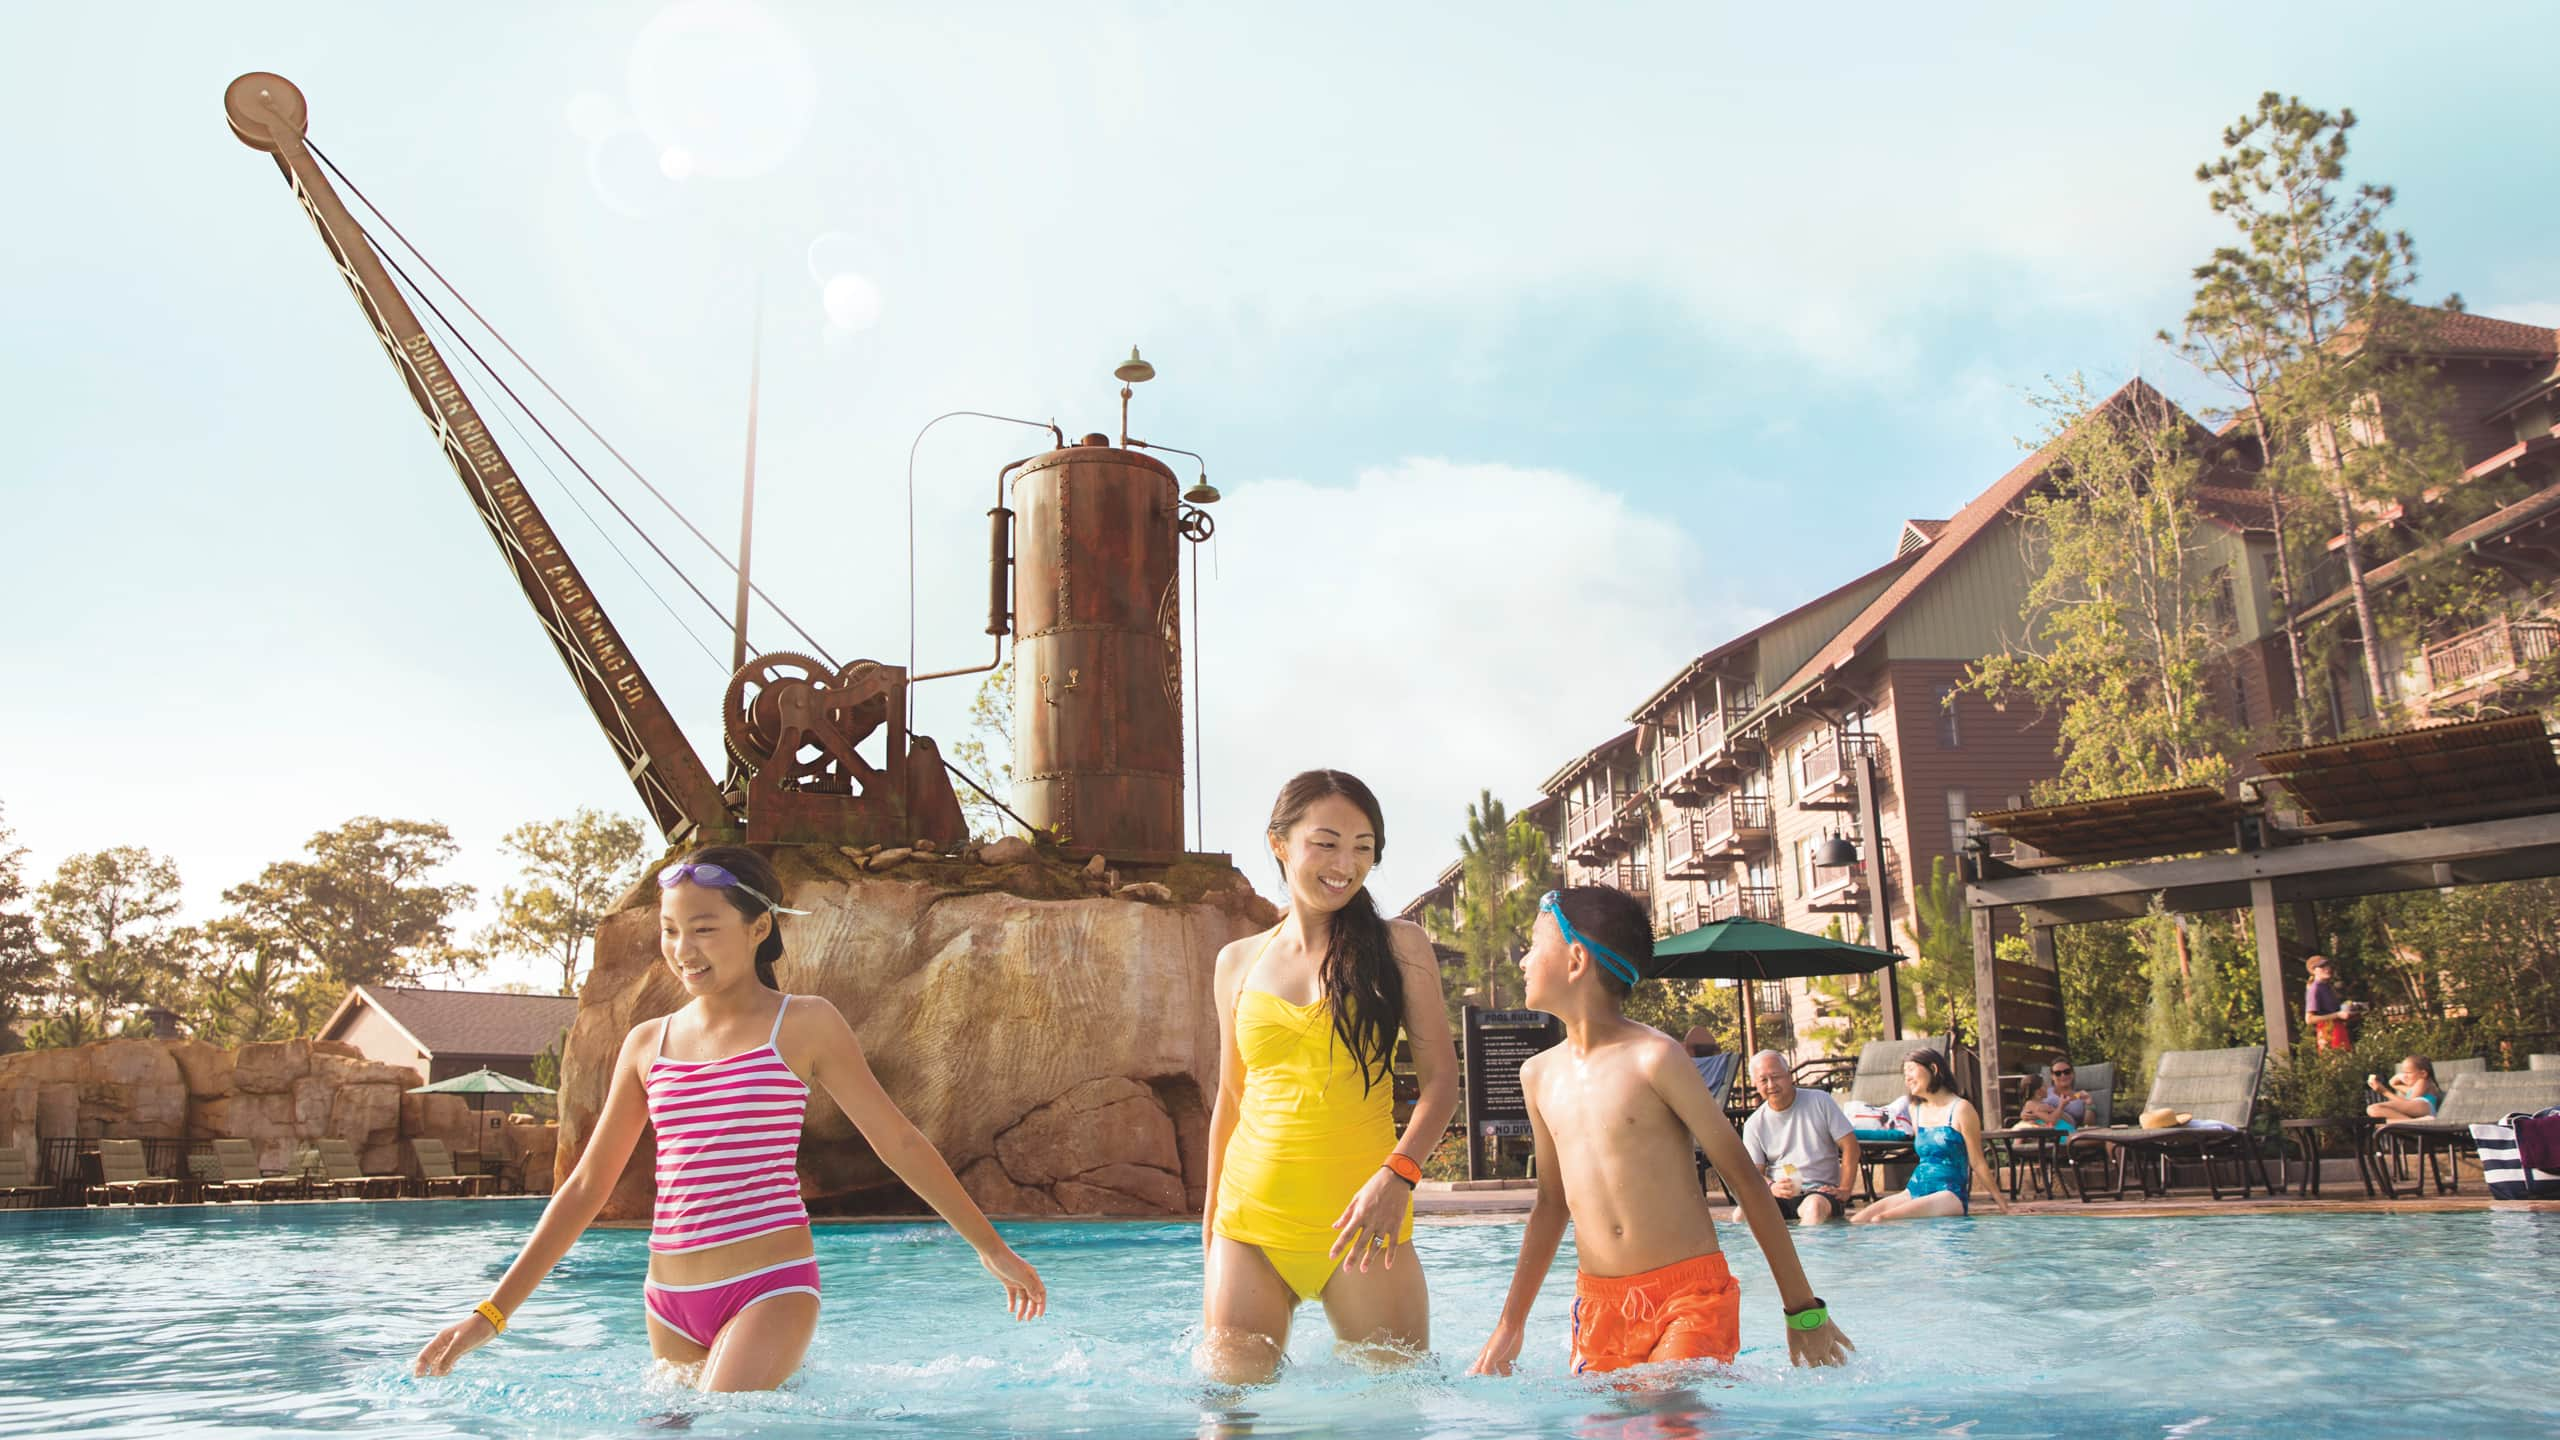 A woman and 2 children wade in a pool in front of a hotel themed in a rustic setting